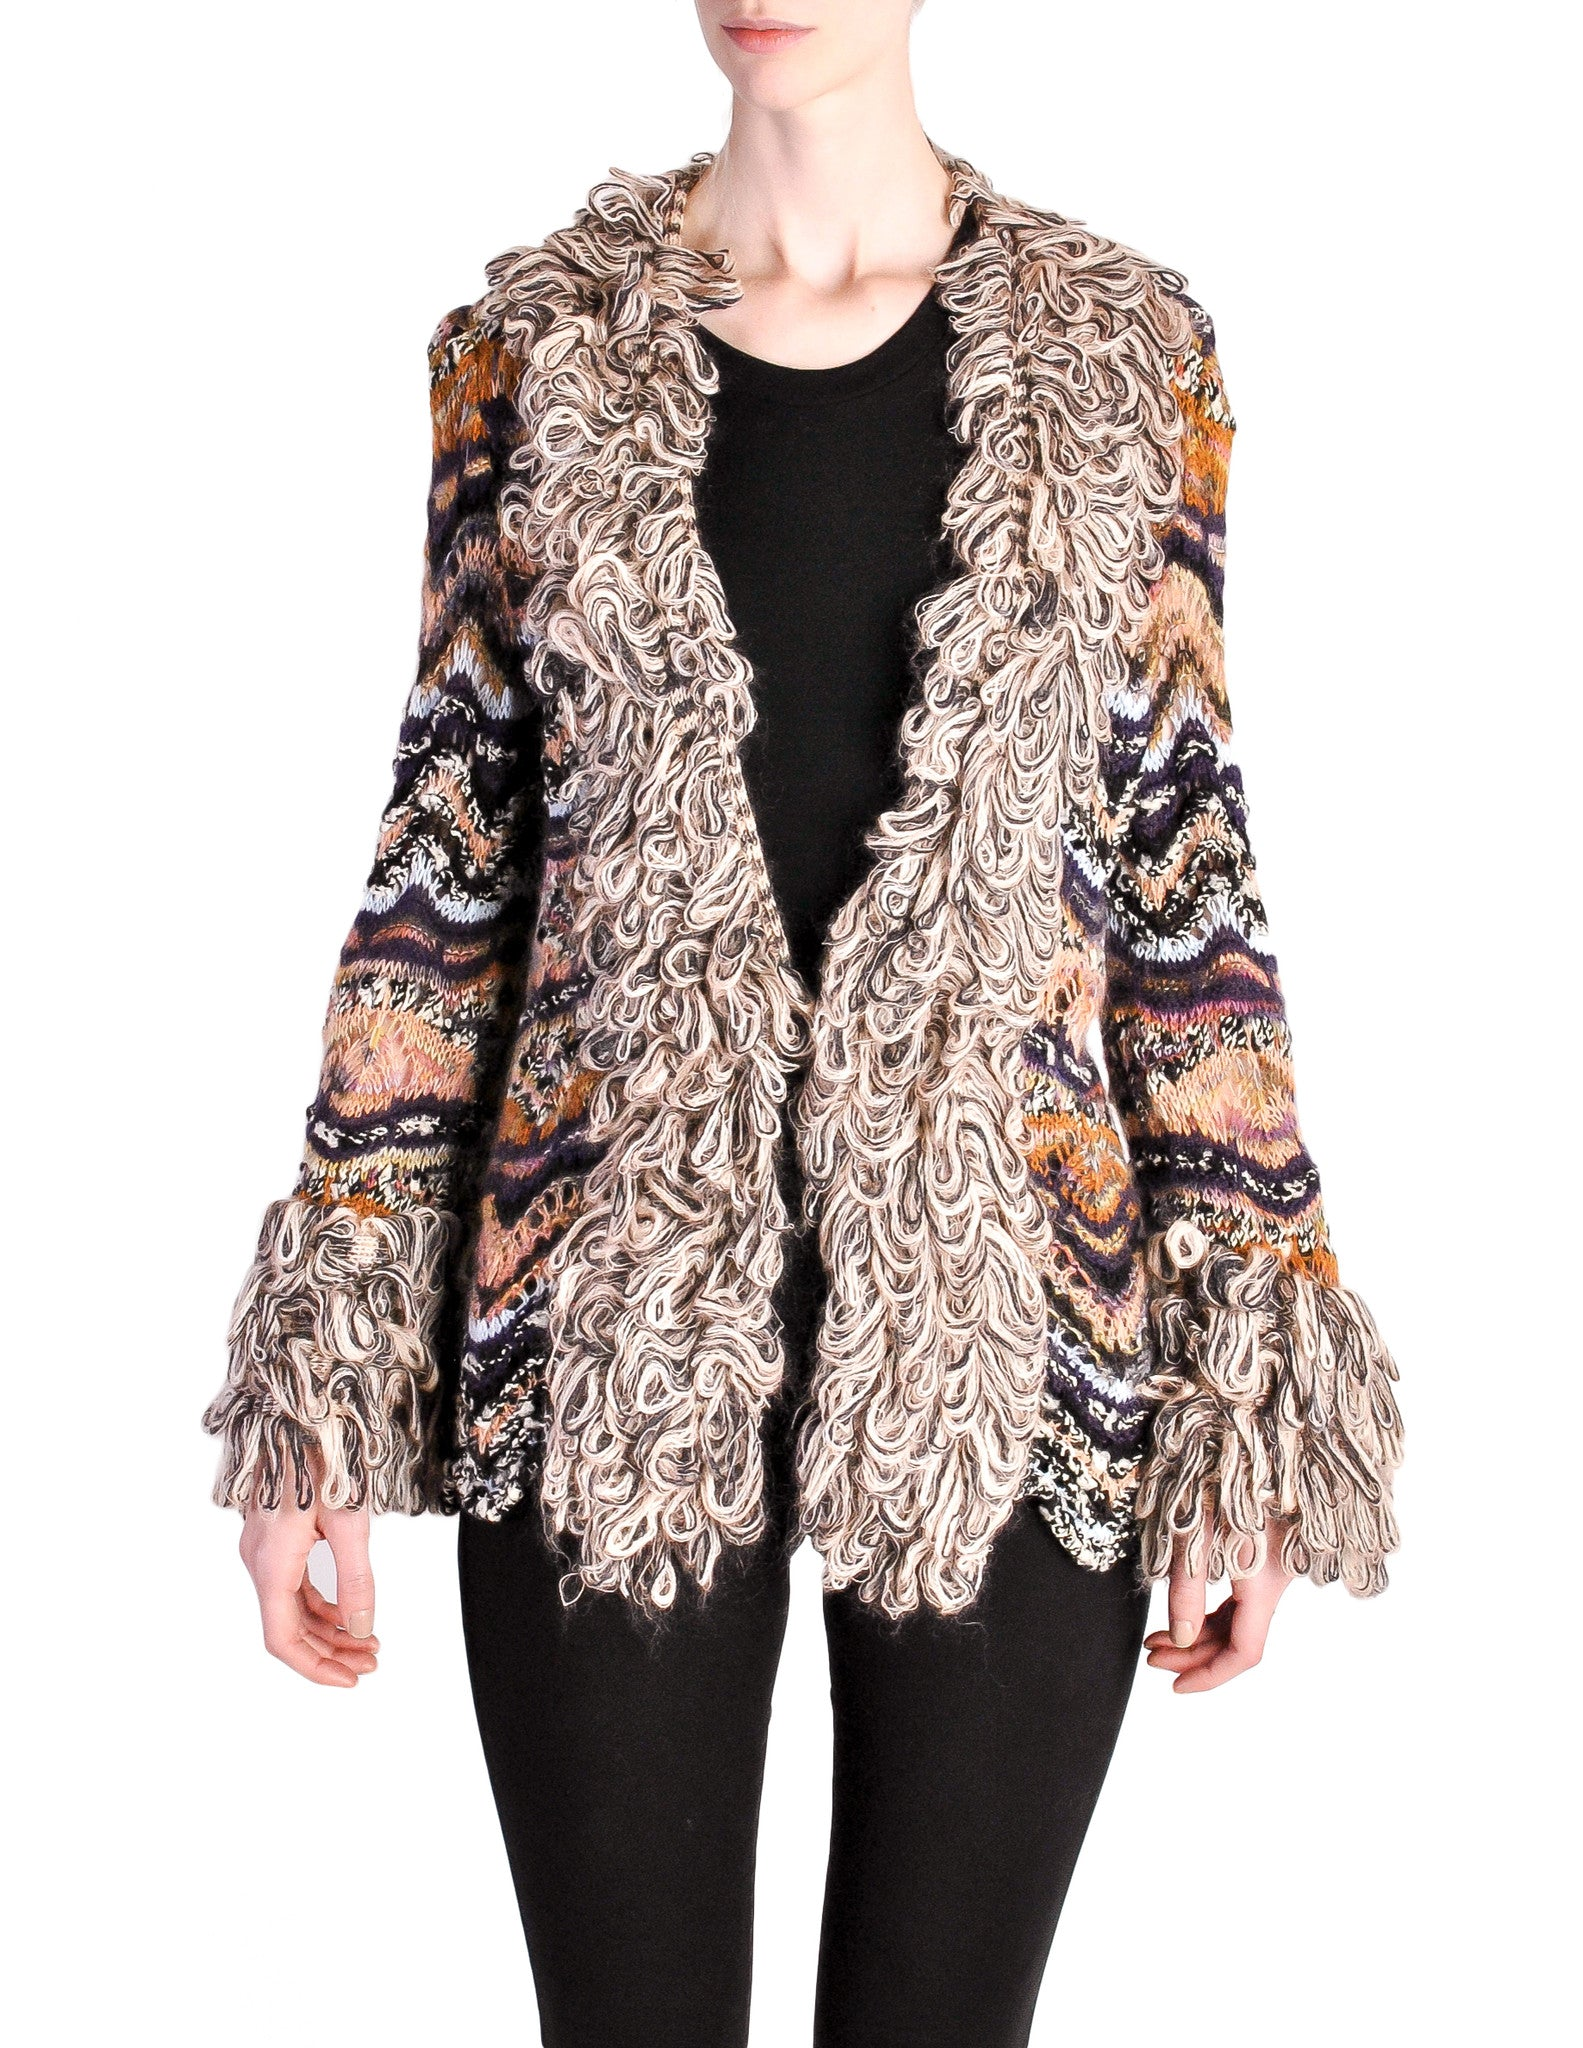 Missoni Vintage Chunky Multicolor Shaggy Collar Cardigan Sweater - Amarcord Vintage Fashion  - 1